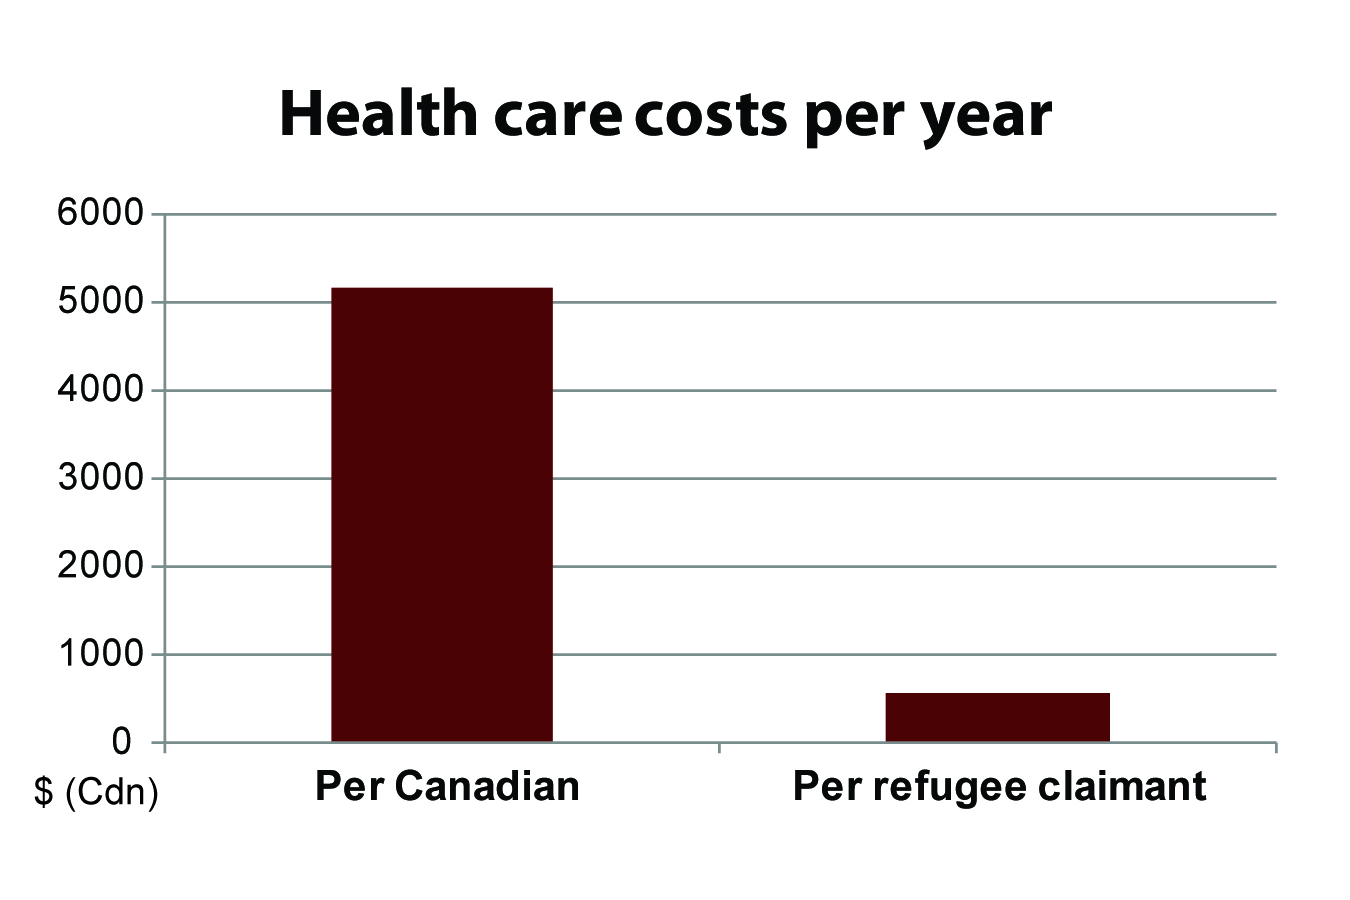 Cost of healthcare for refugees in Canada